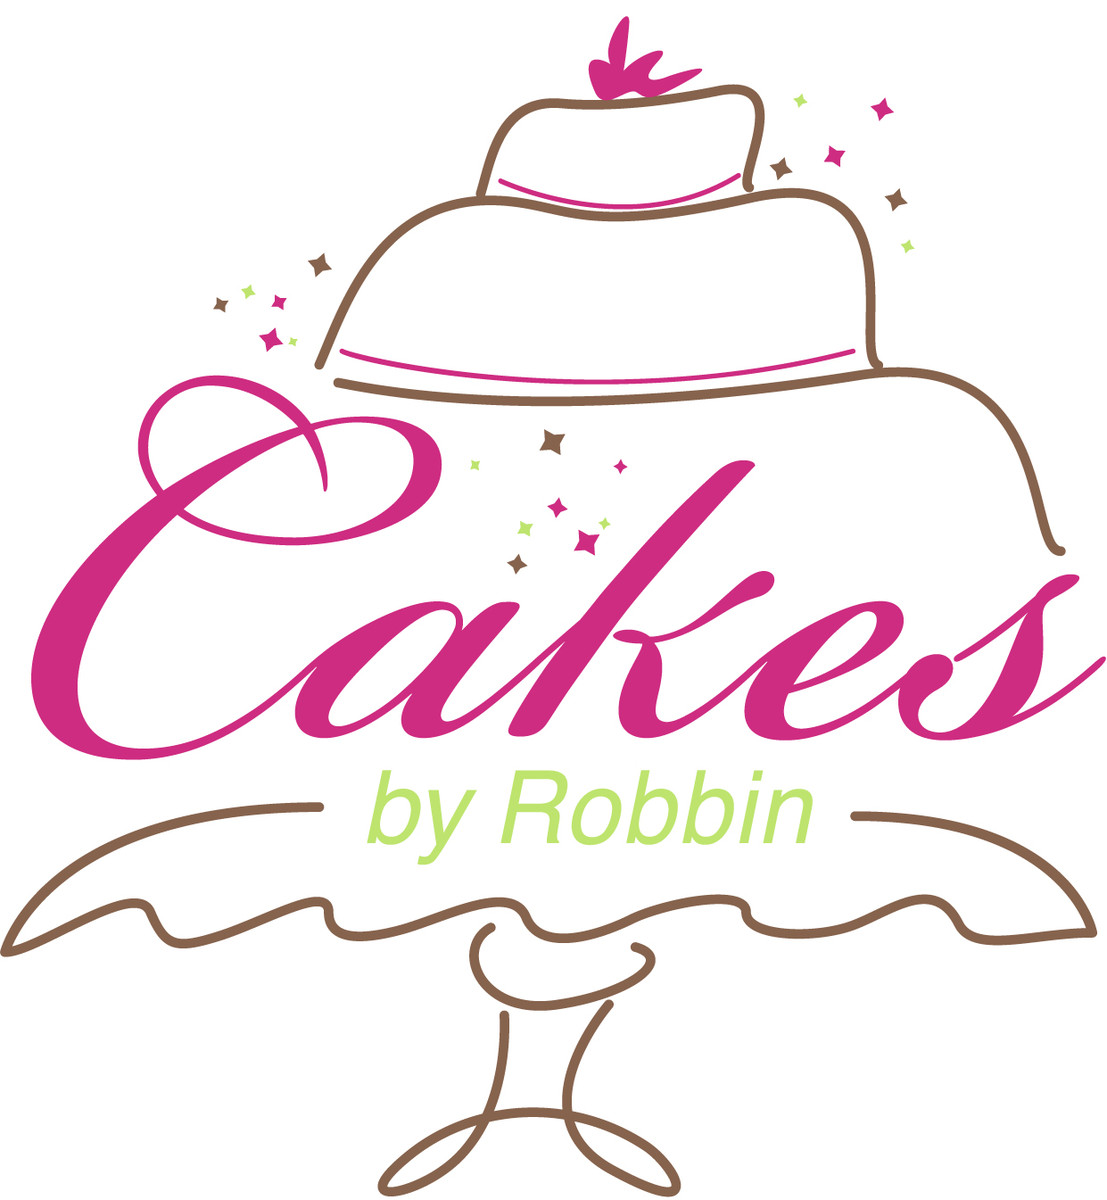 Little Rock Wedding Cakes - Reviews for 13 Cakes